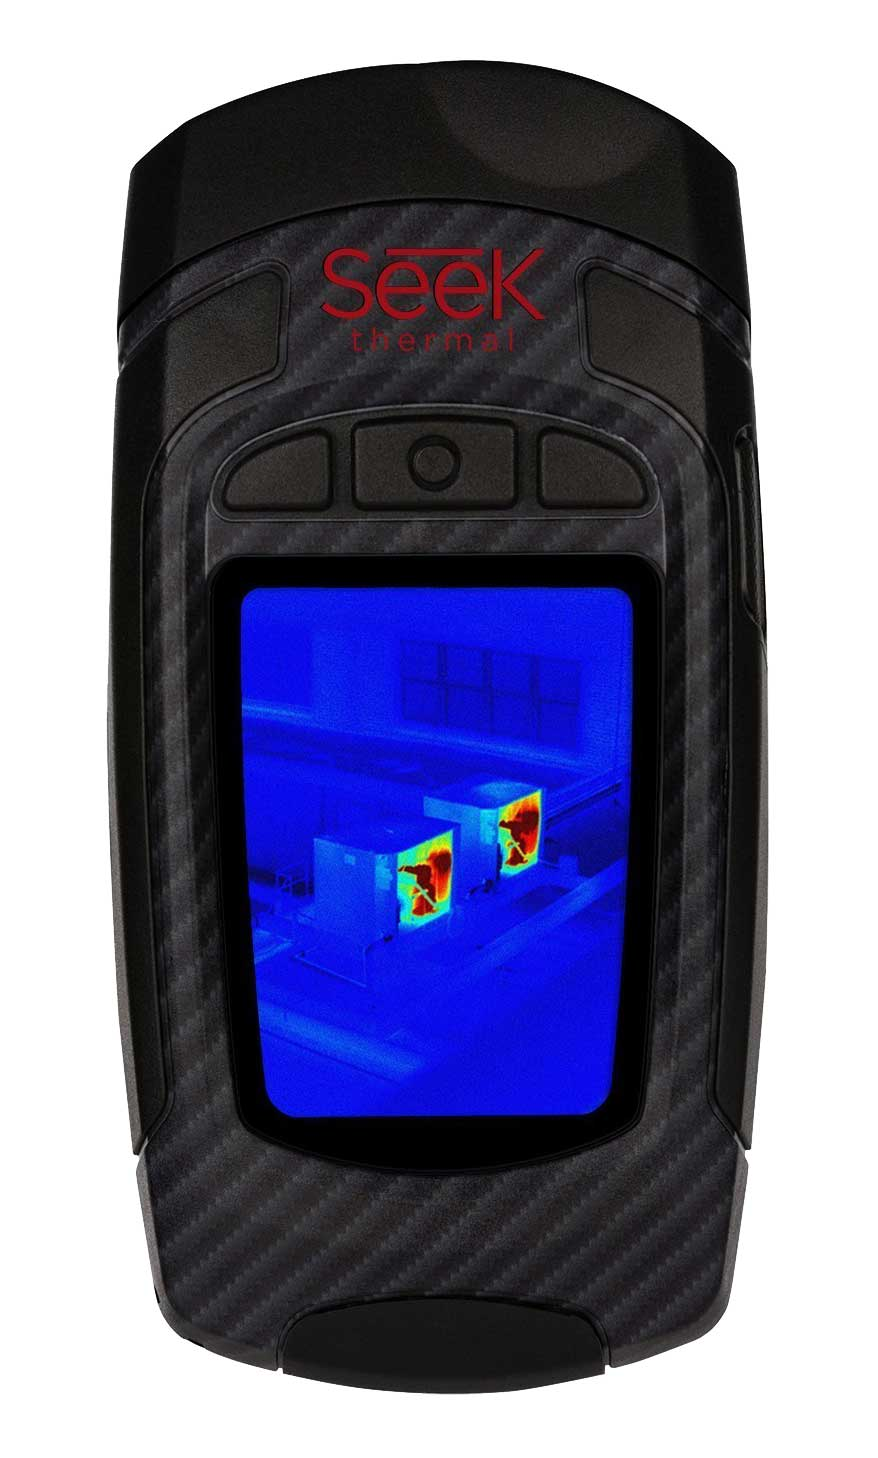 Issue 9 September Volume 18 2016 Solid State Relay Teledyne Handheld Thermal Imaging